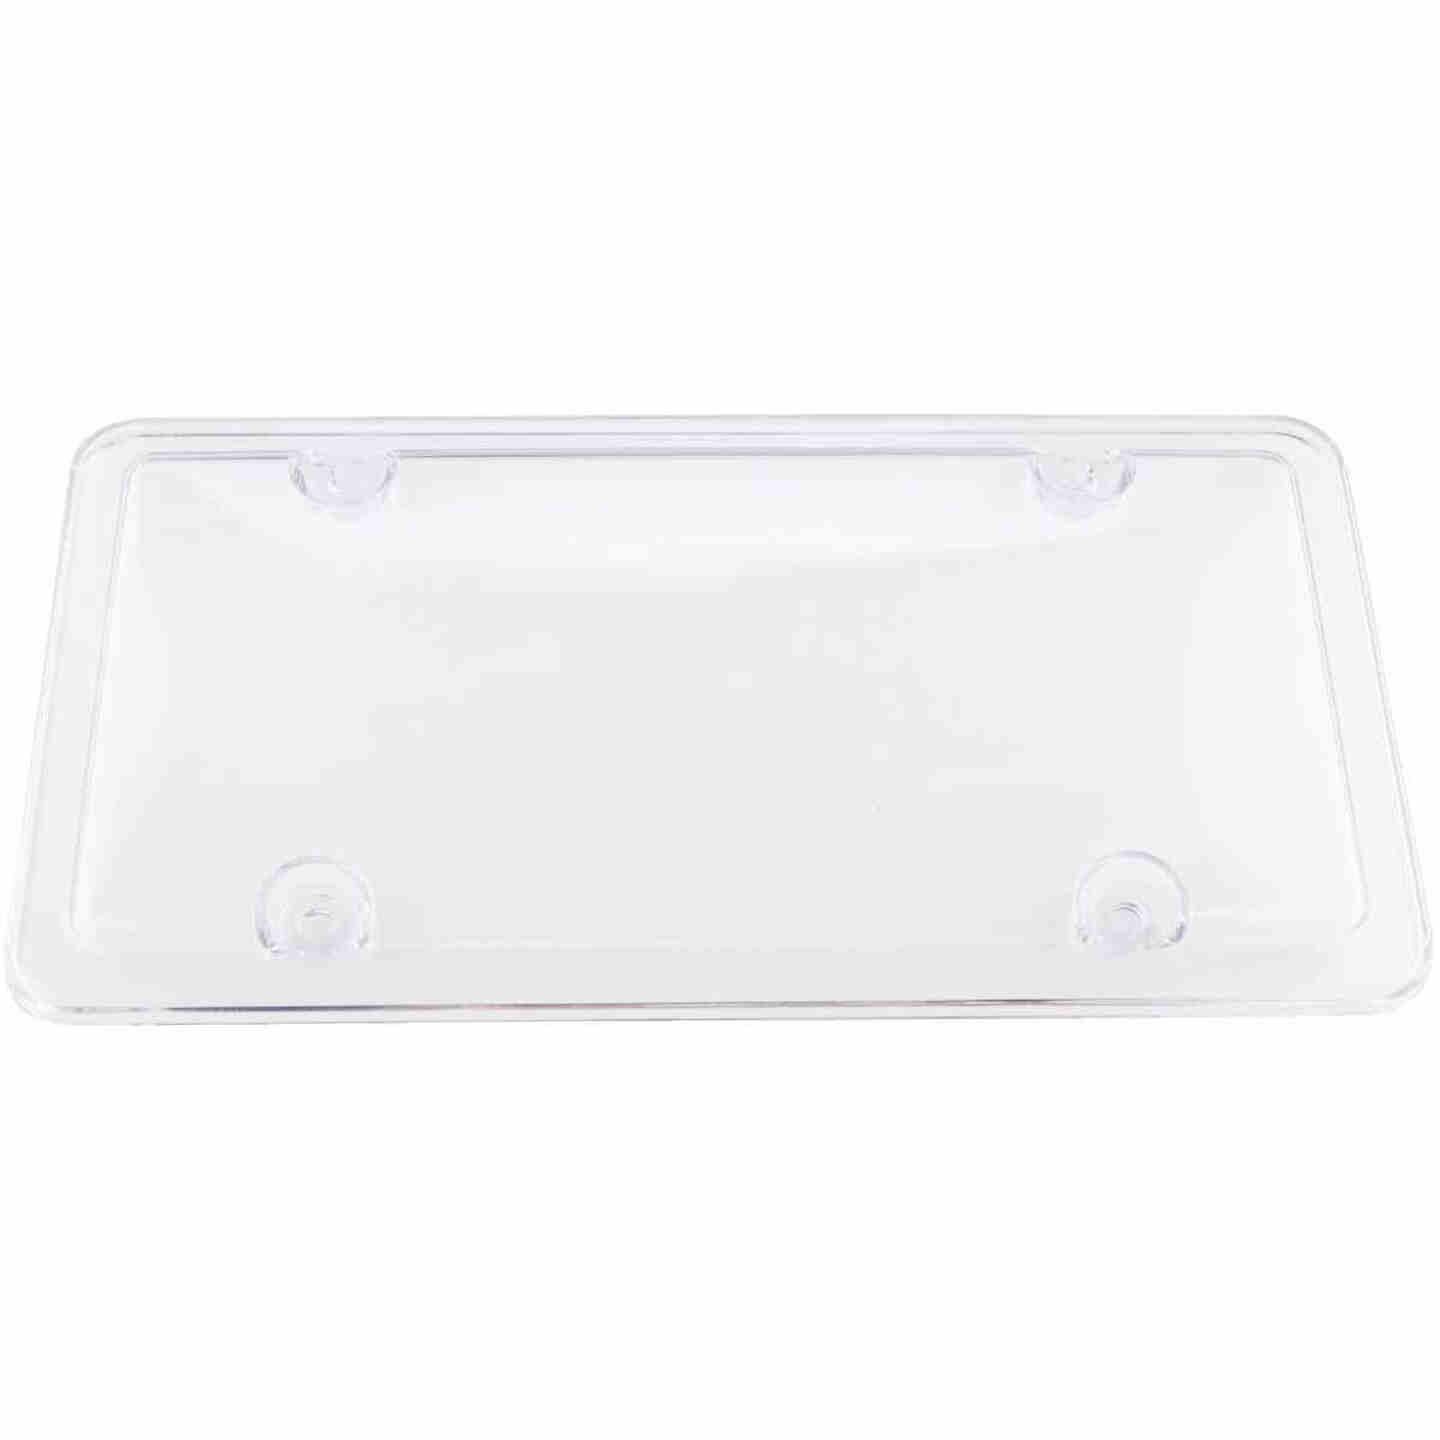 Custom Accessories License Plate Protector Image 1